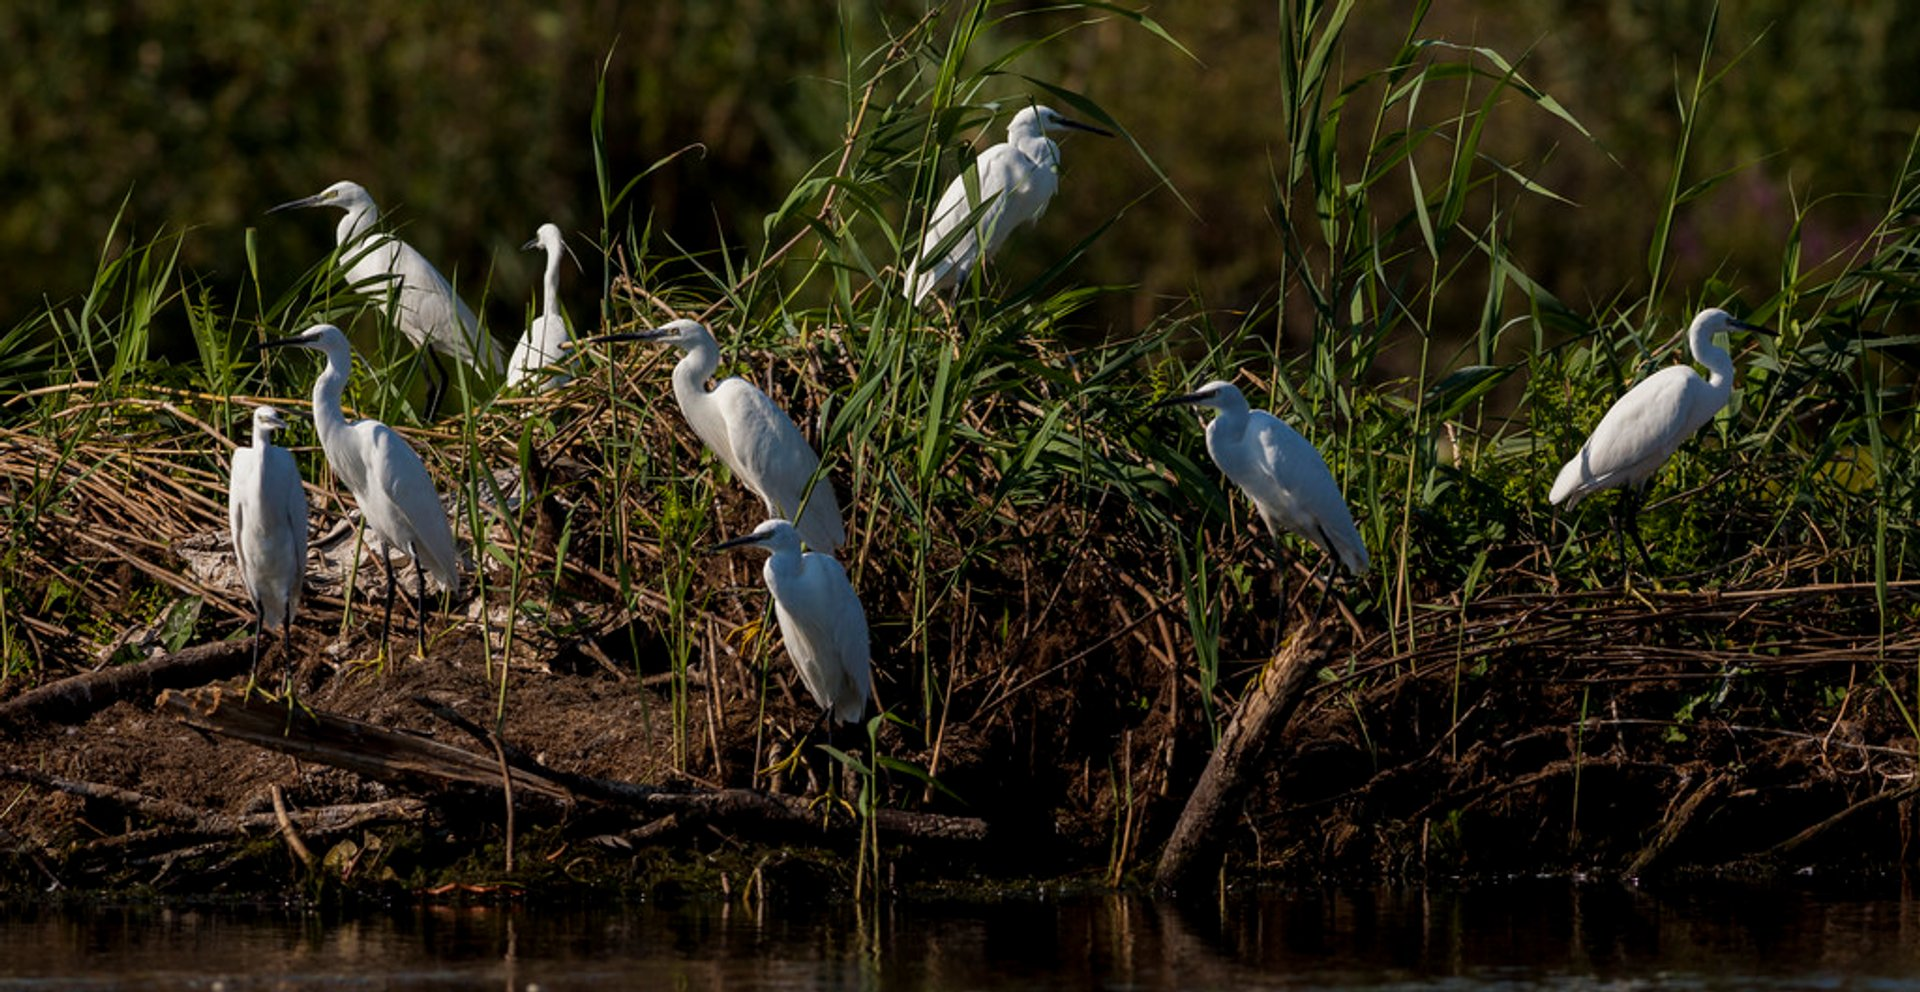 Great White Egrets of the Danube Delta 2020